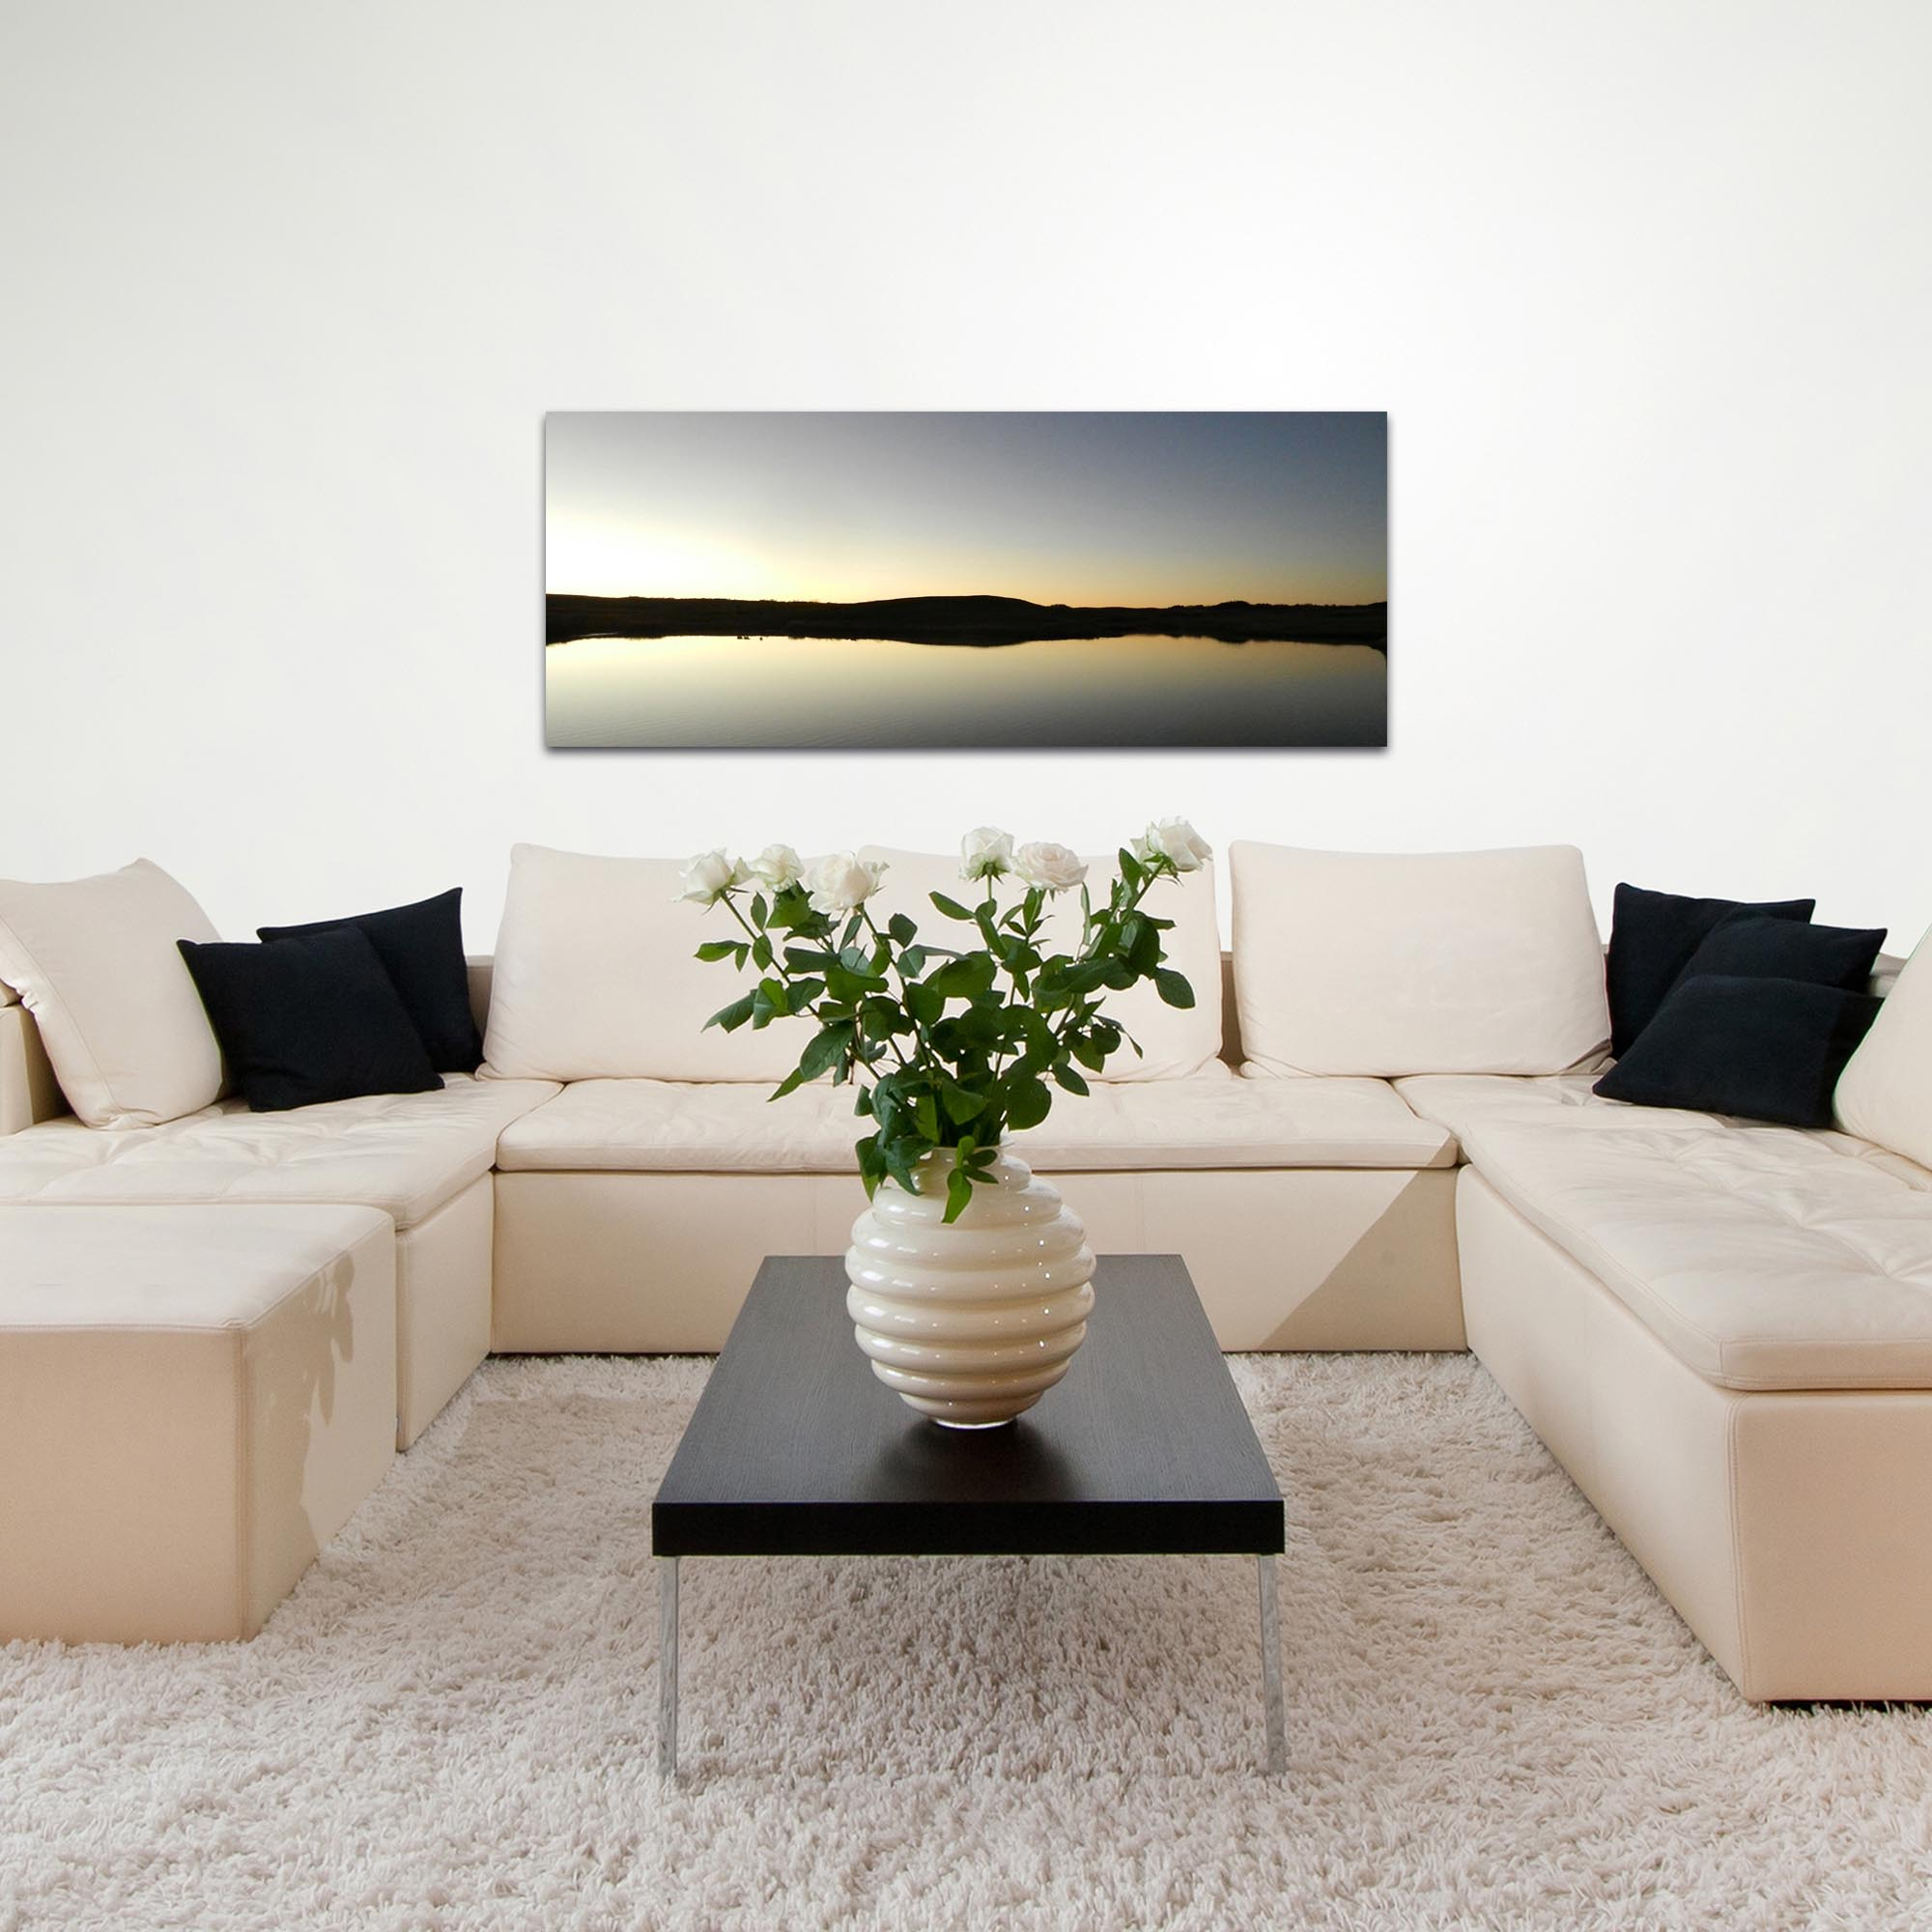 Western Wall Art 'Lakeside Sunset' - American West Decor on Metal or Plexiglass - Lifestyle View